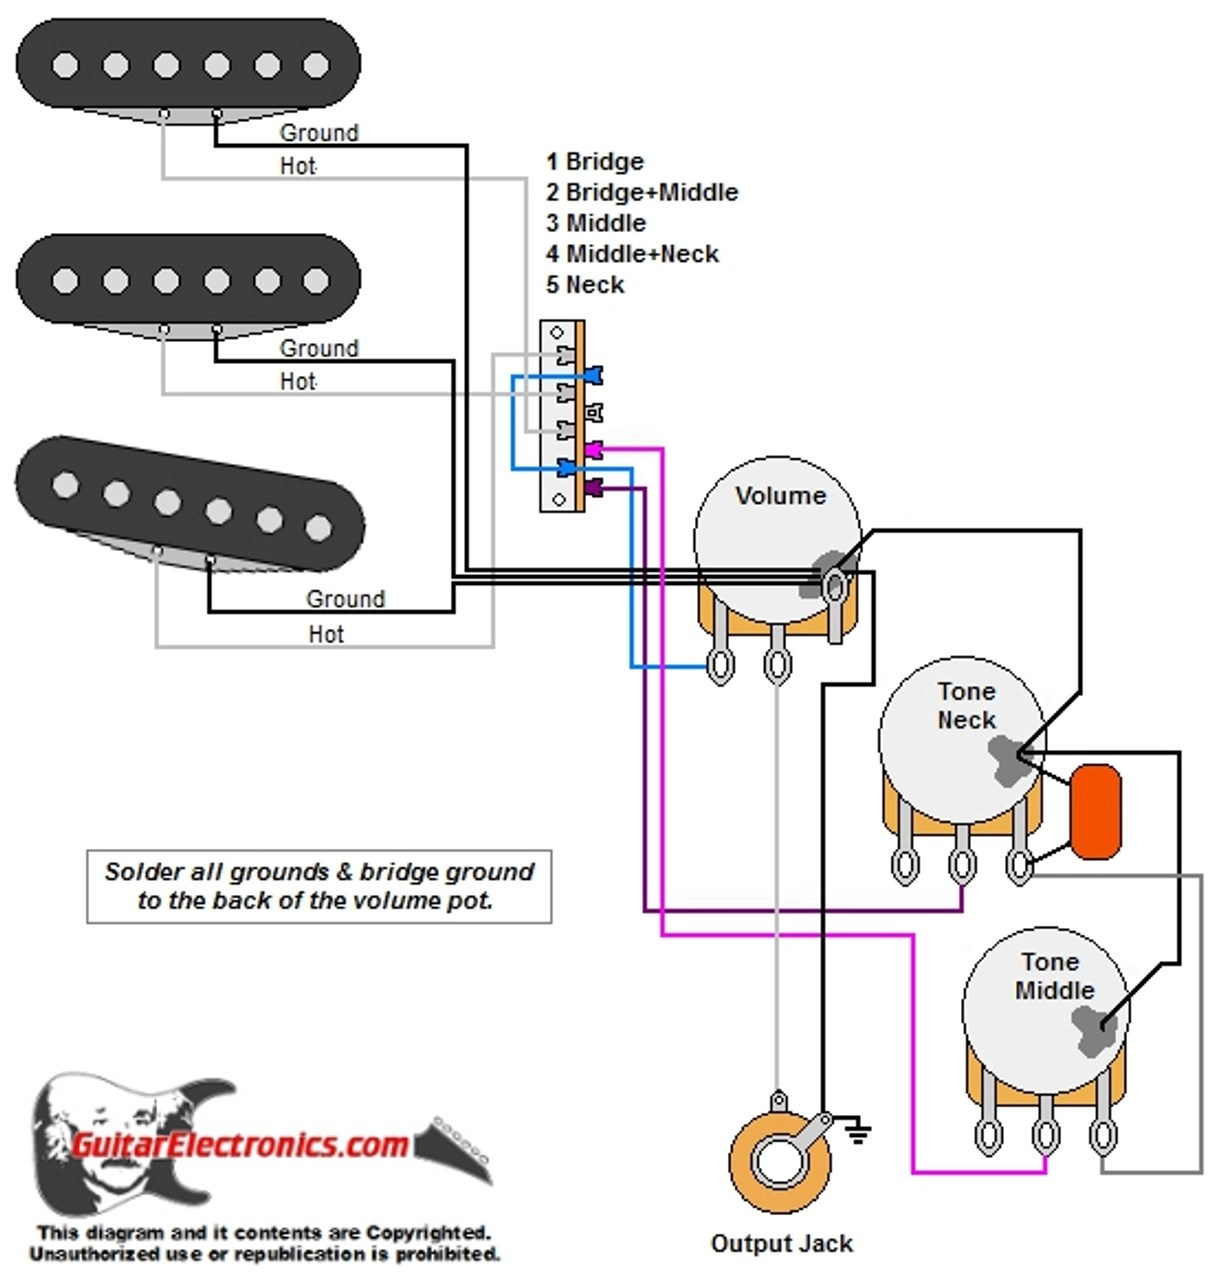 medium resolution of fender strat wiring diagram 5 way switch strat style guitar wiring diagramwdusss5l1201 80483 1481740458 jpg c u003d2